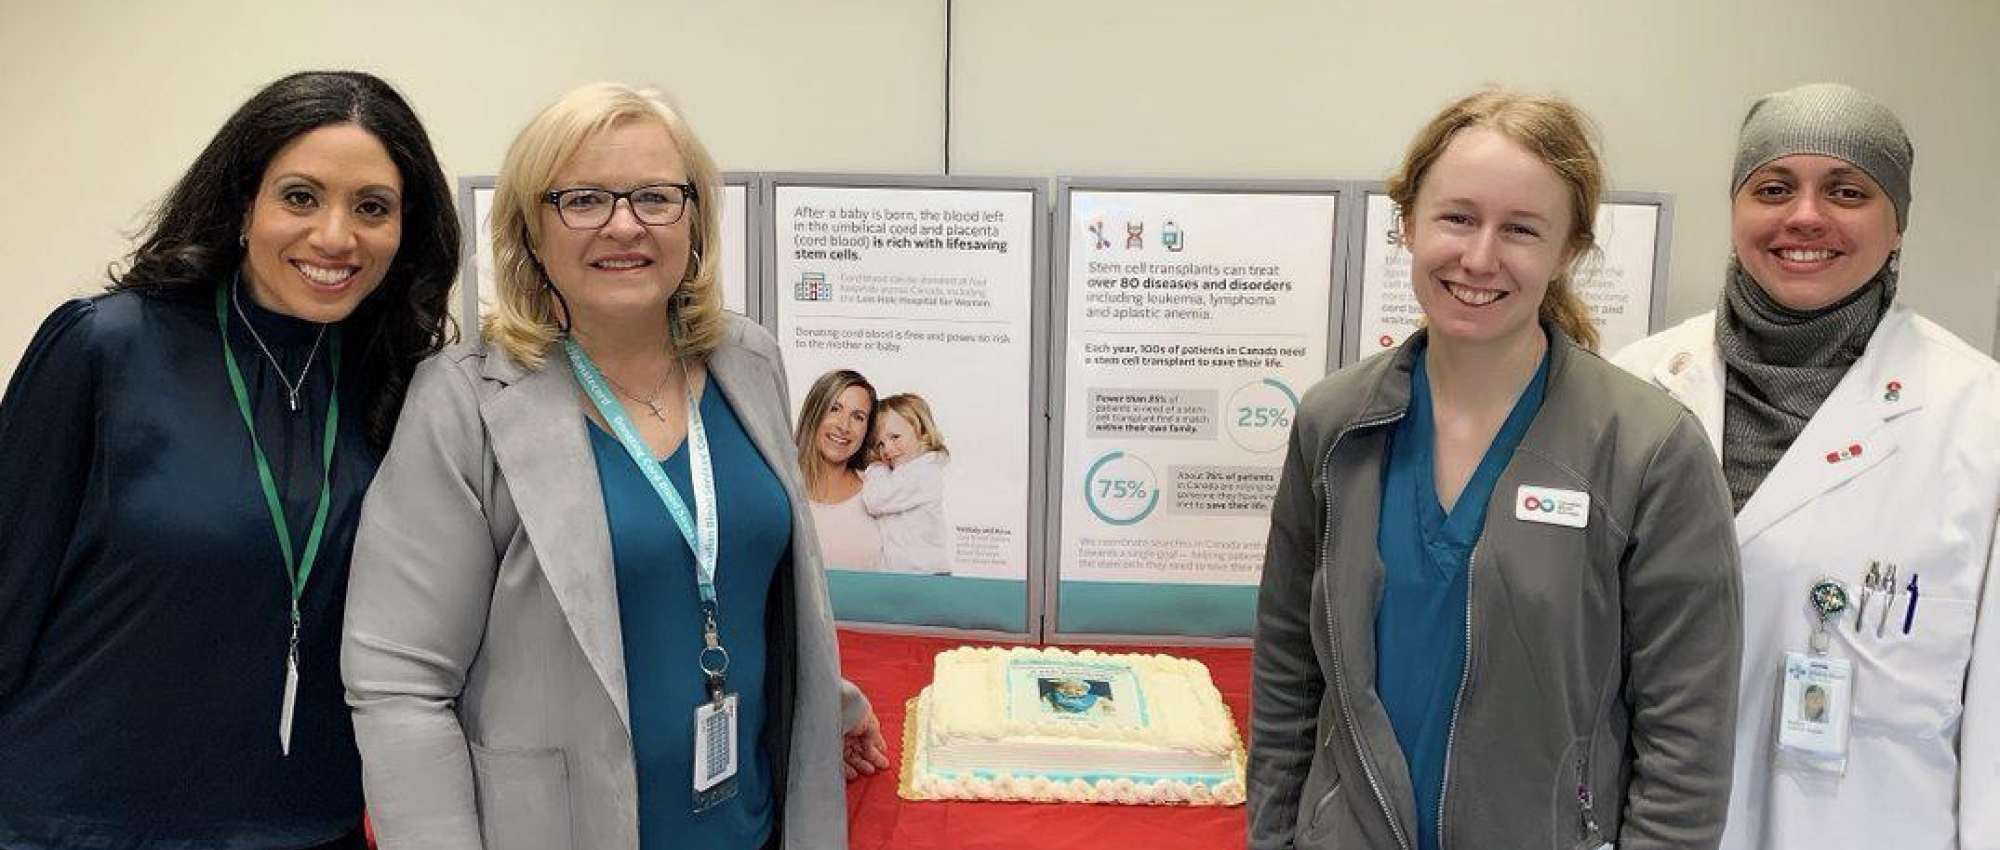 Celebration-events-mark-fifth-anniversary-of-cord-blood-partnership